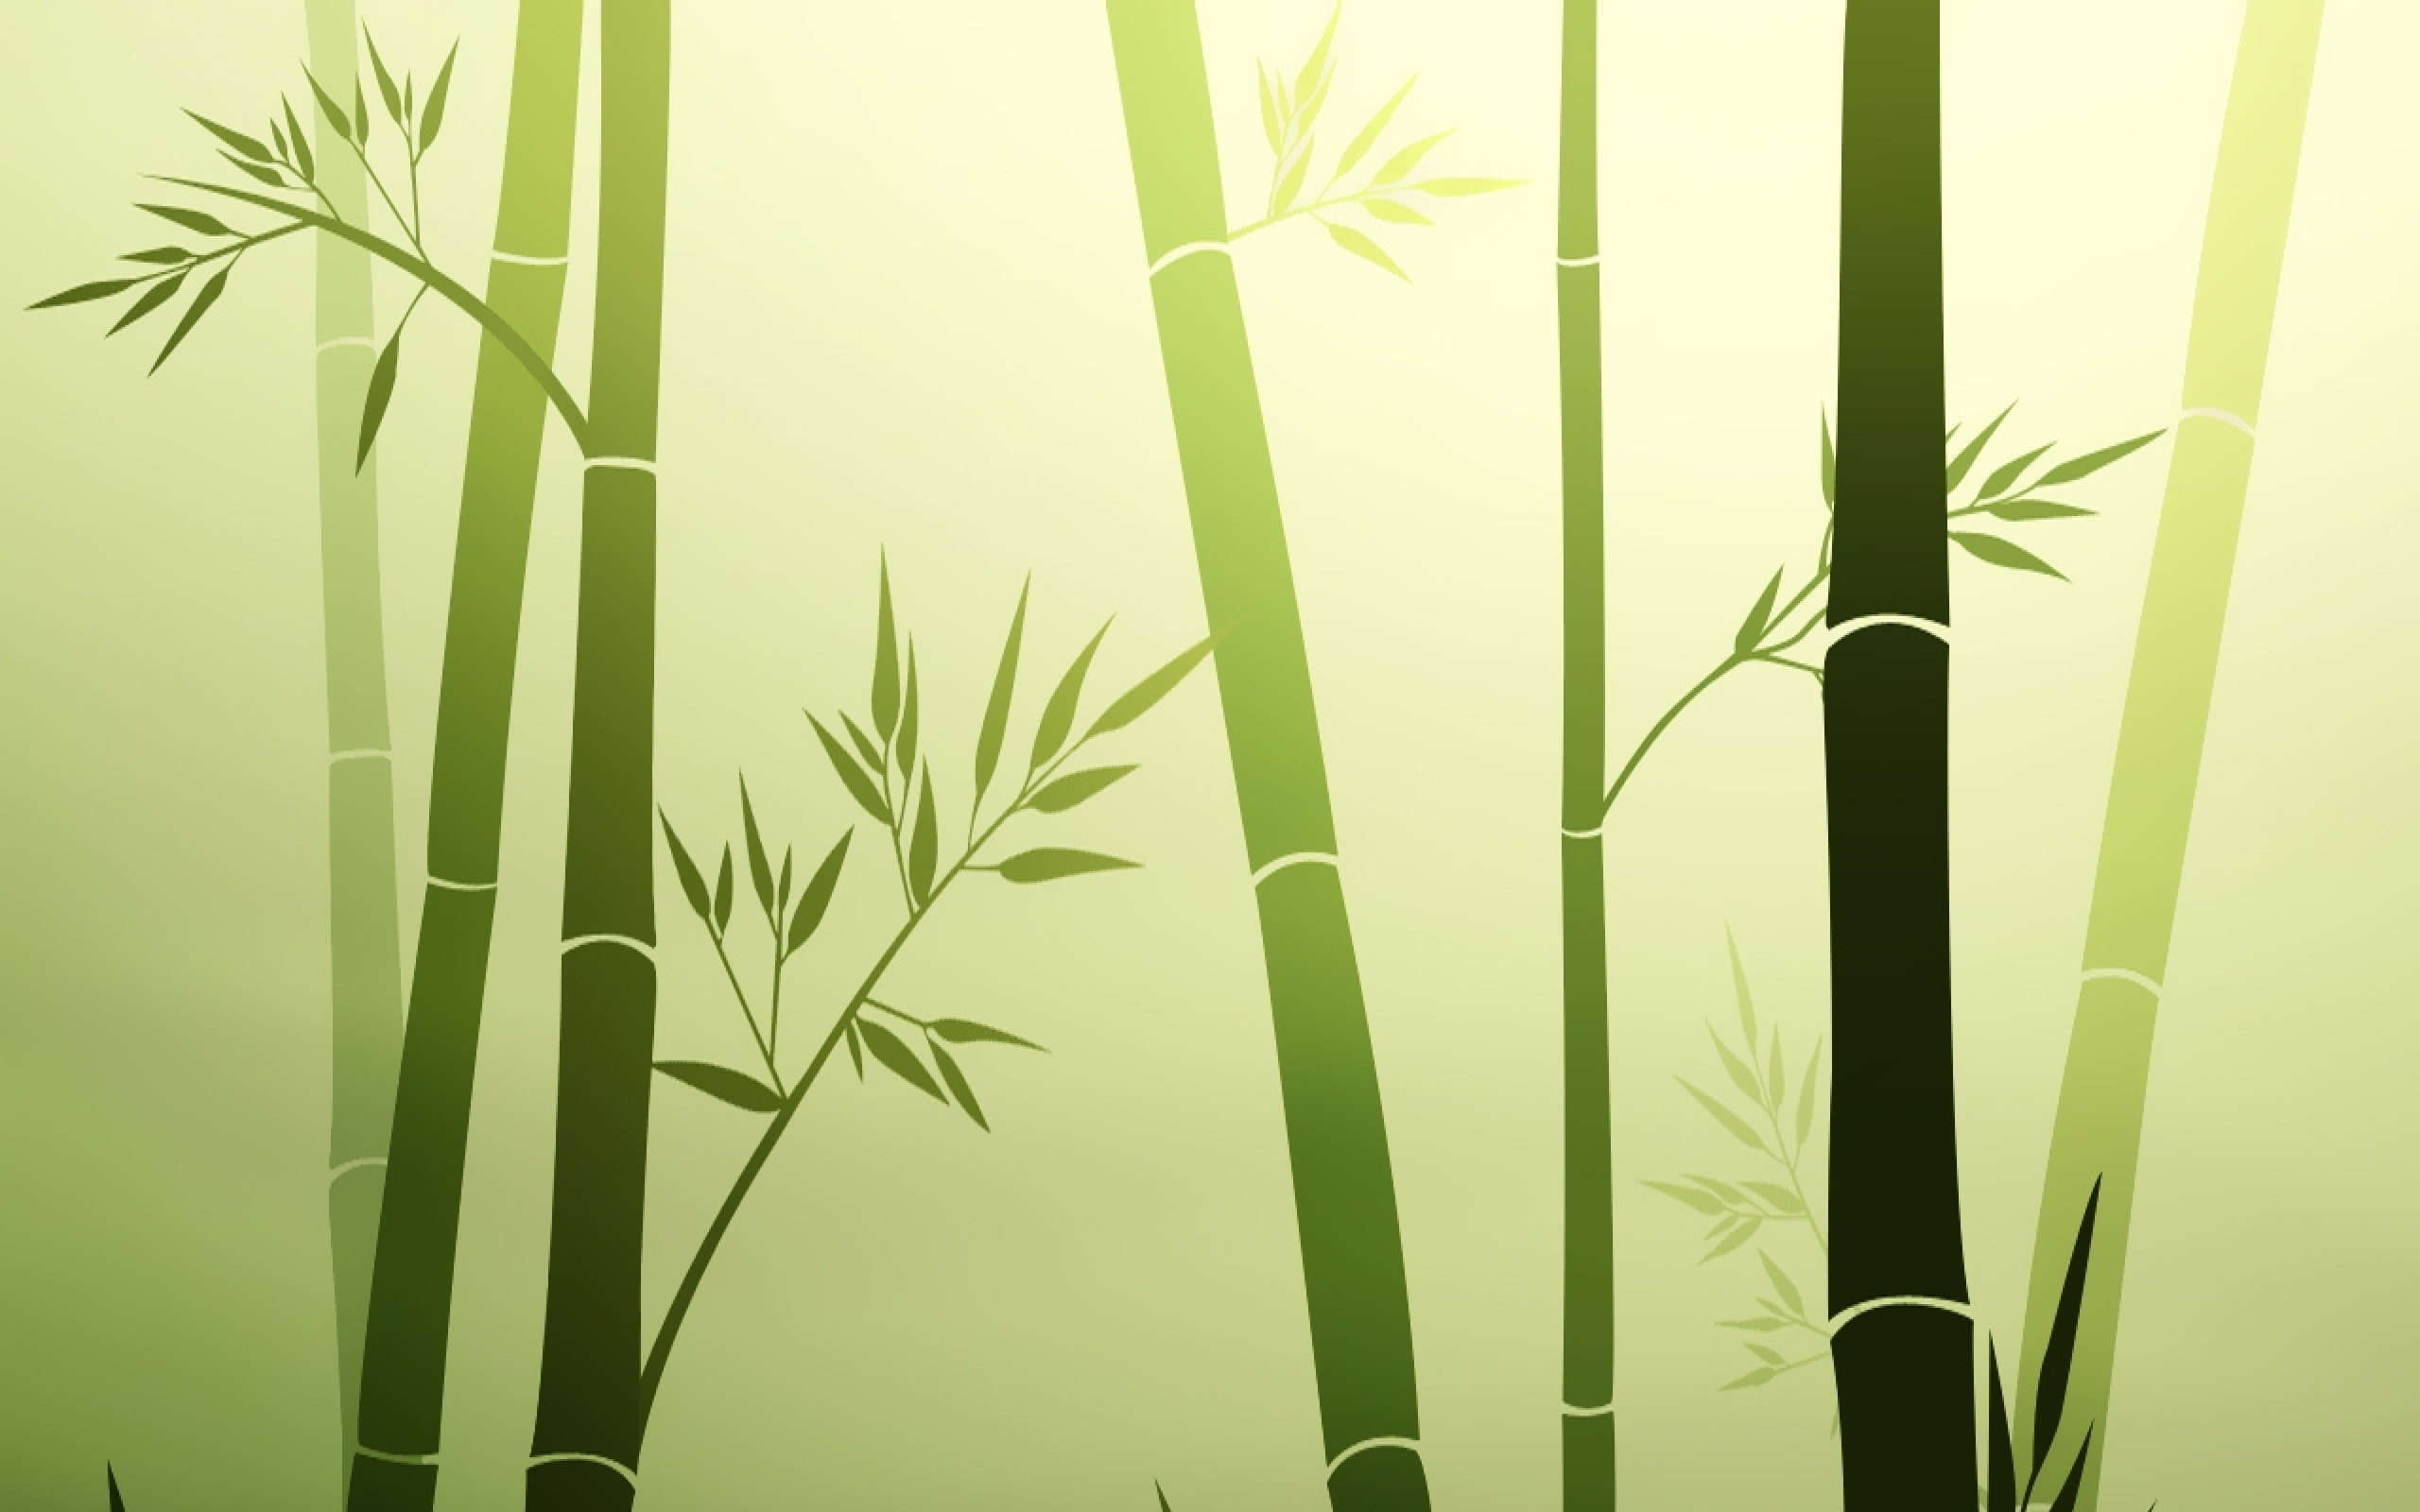 Wall Paint Bamboo Design : Bamboo simplistic hd wallpapers backgrounds